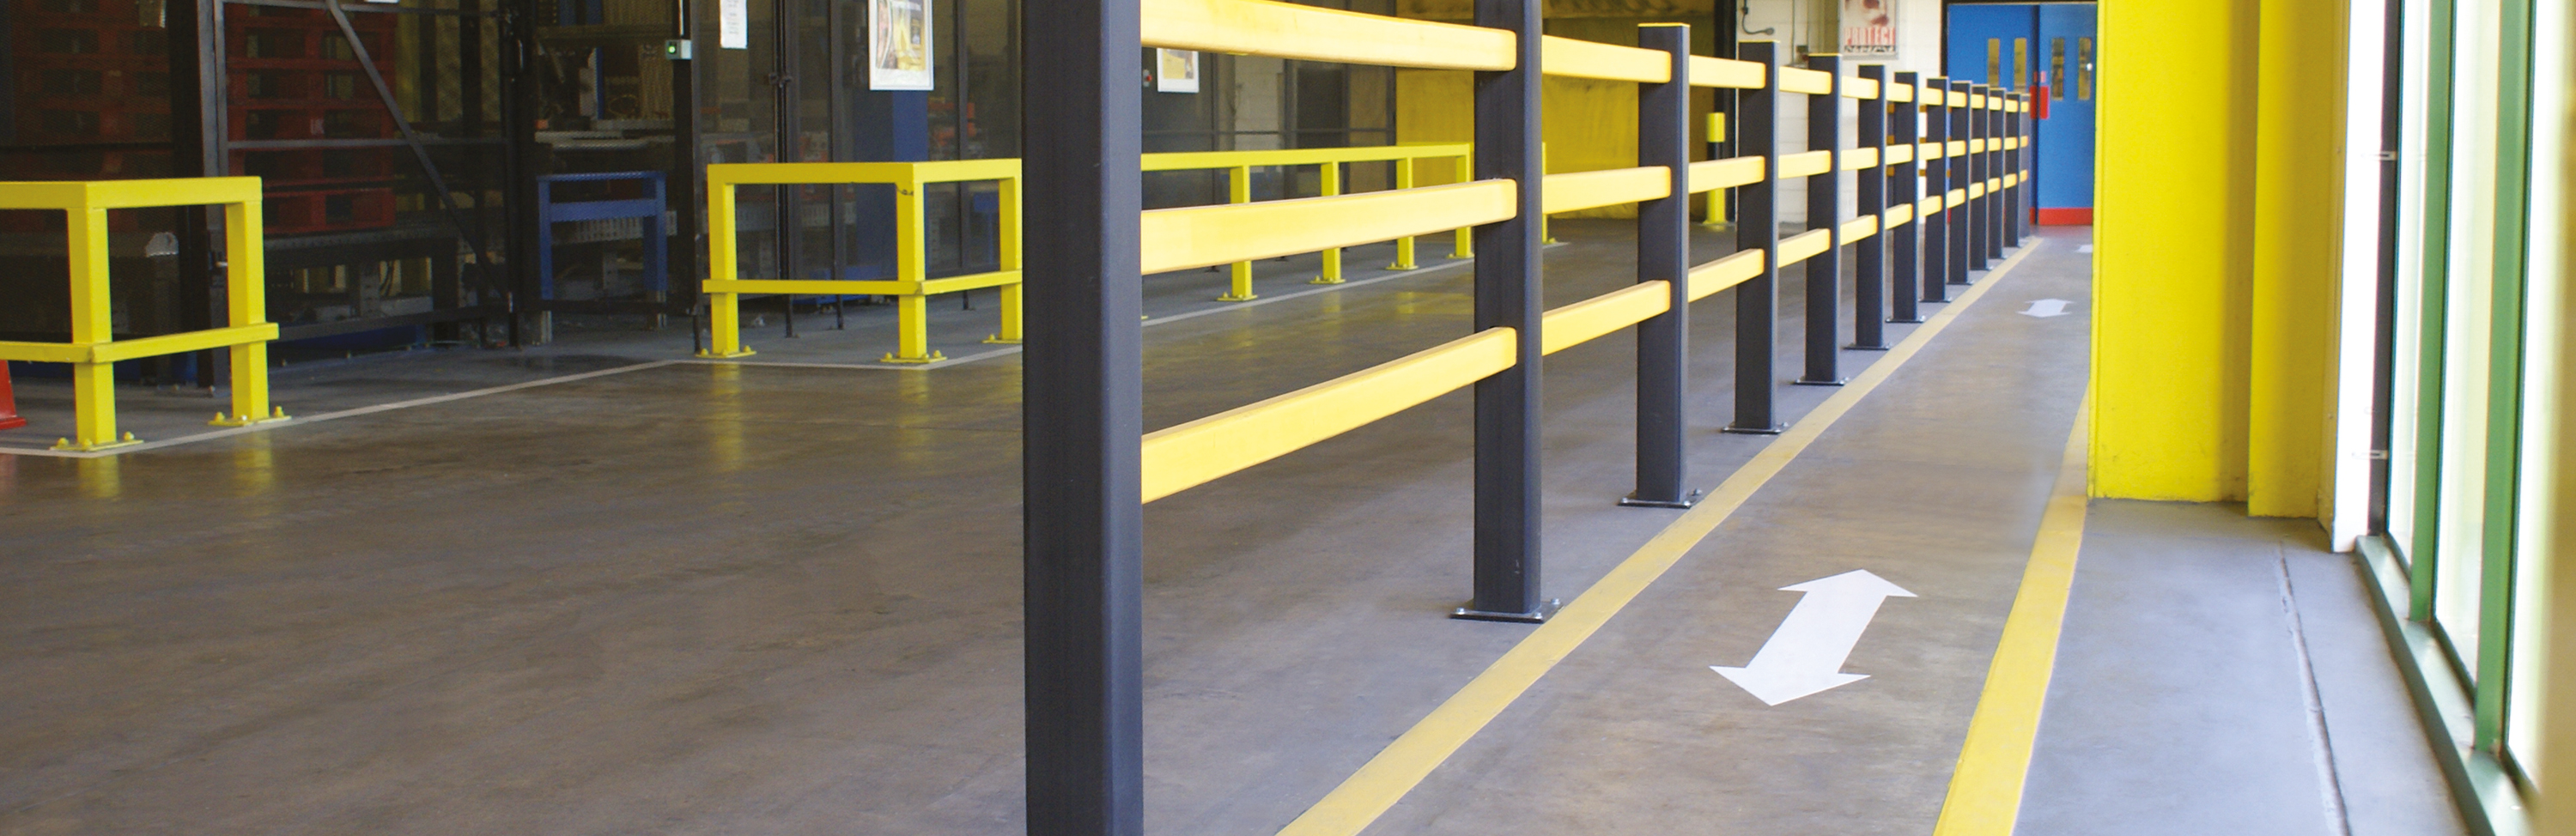 "<p>""<span><strong>A-SAFE</strong> has proved to be the most cost-efficient solution for our safety barriers, but this is just a bonus. The most essential benefit is that their solutions provide the highest standards of safety so that our team feel at ease in their working environment. </span><span>The highly-visible yellow barriers have a smart, attractive appearance and have proved to have excellent durability.</span>""</p>"